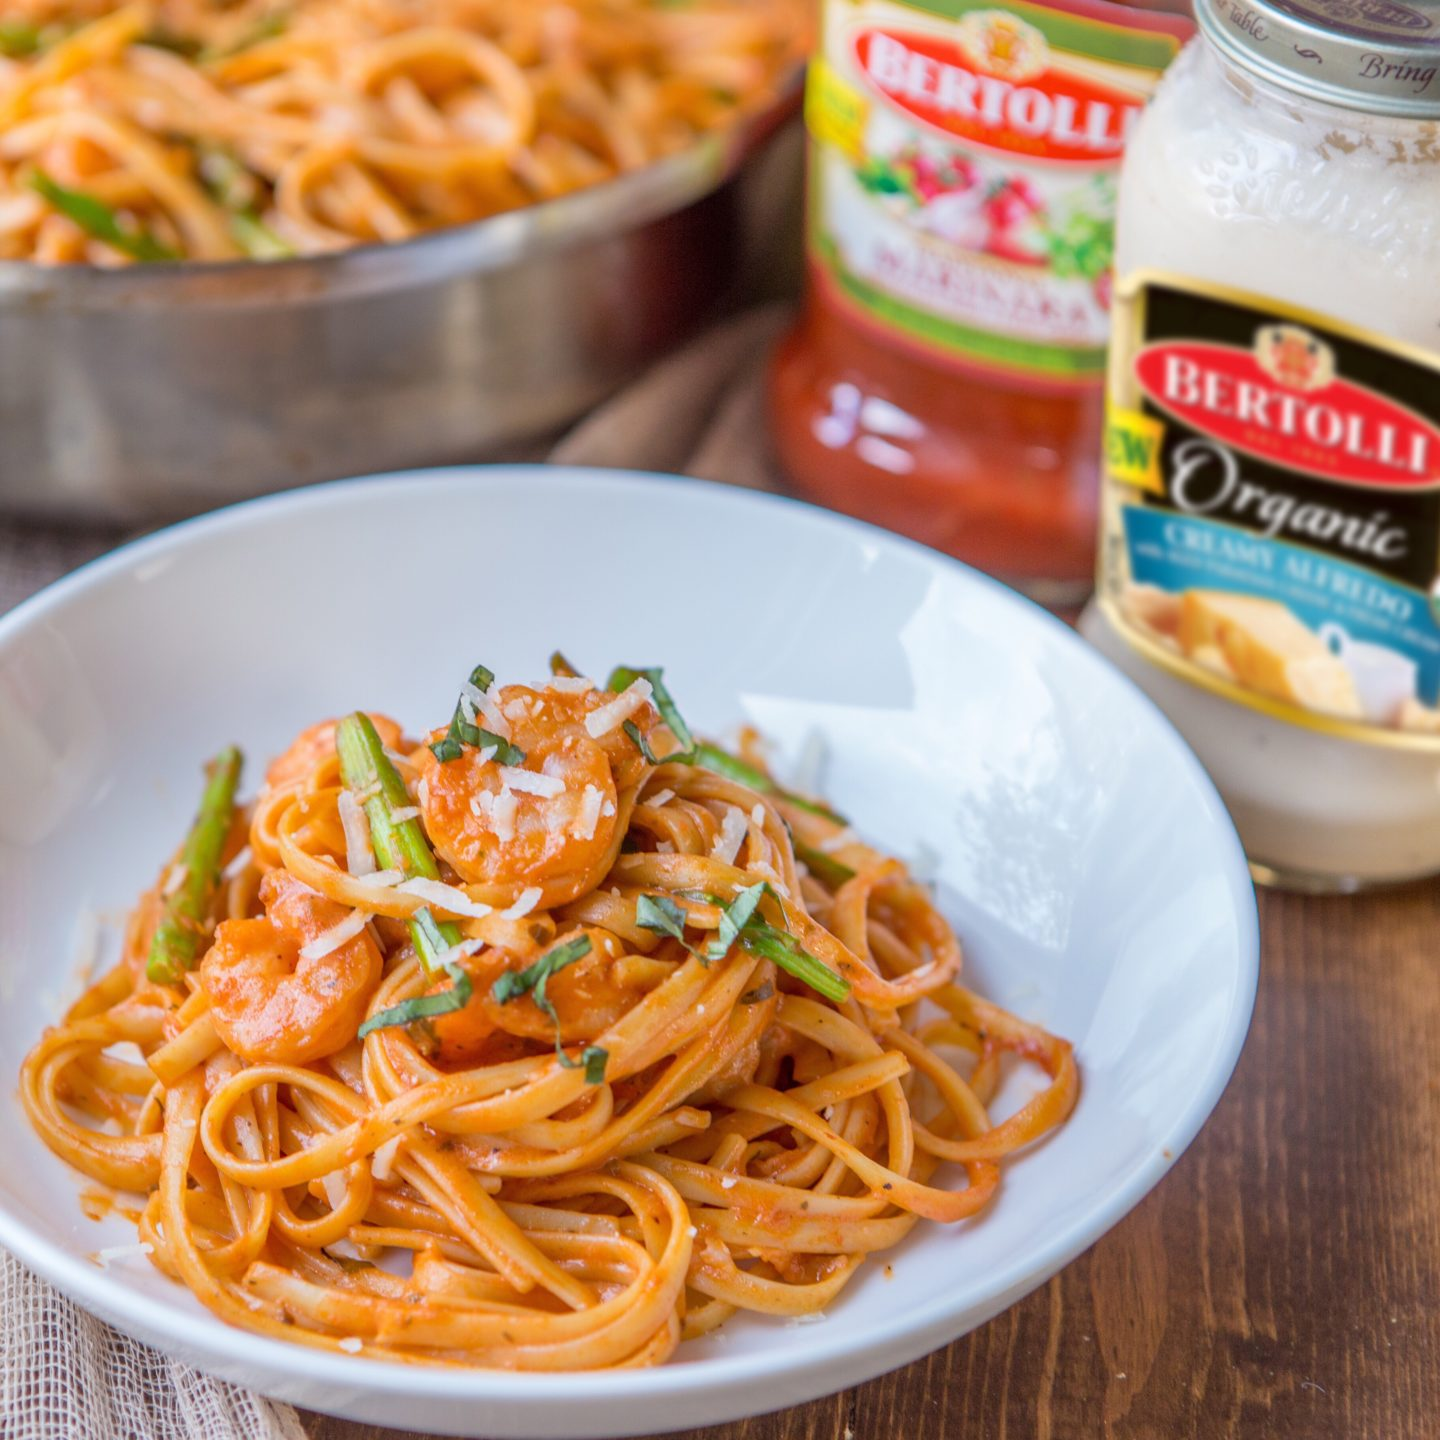 Get   Your   Family   Hooked   On   Shrimp   and   Asparagus   Pasta   with   Bertolli®   sauces